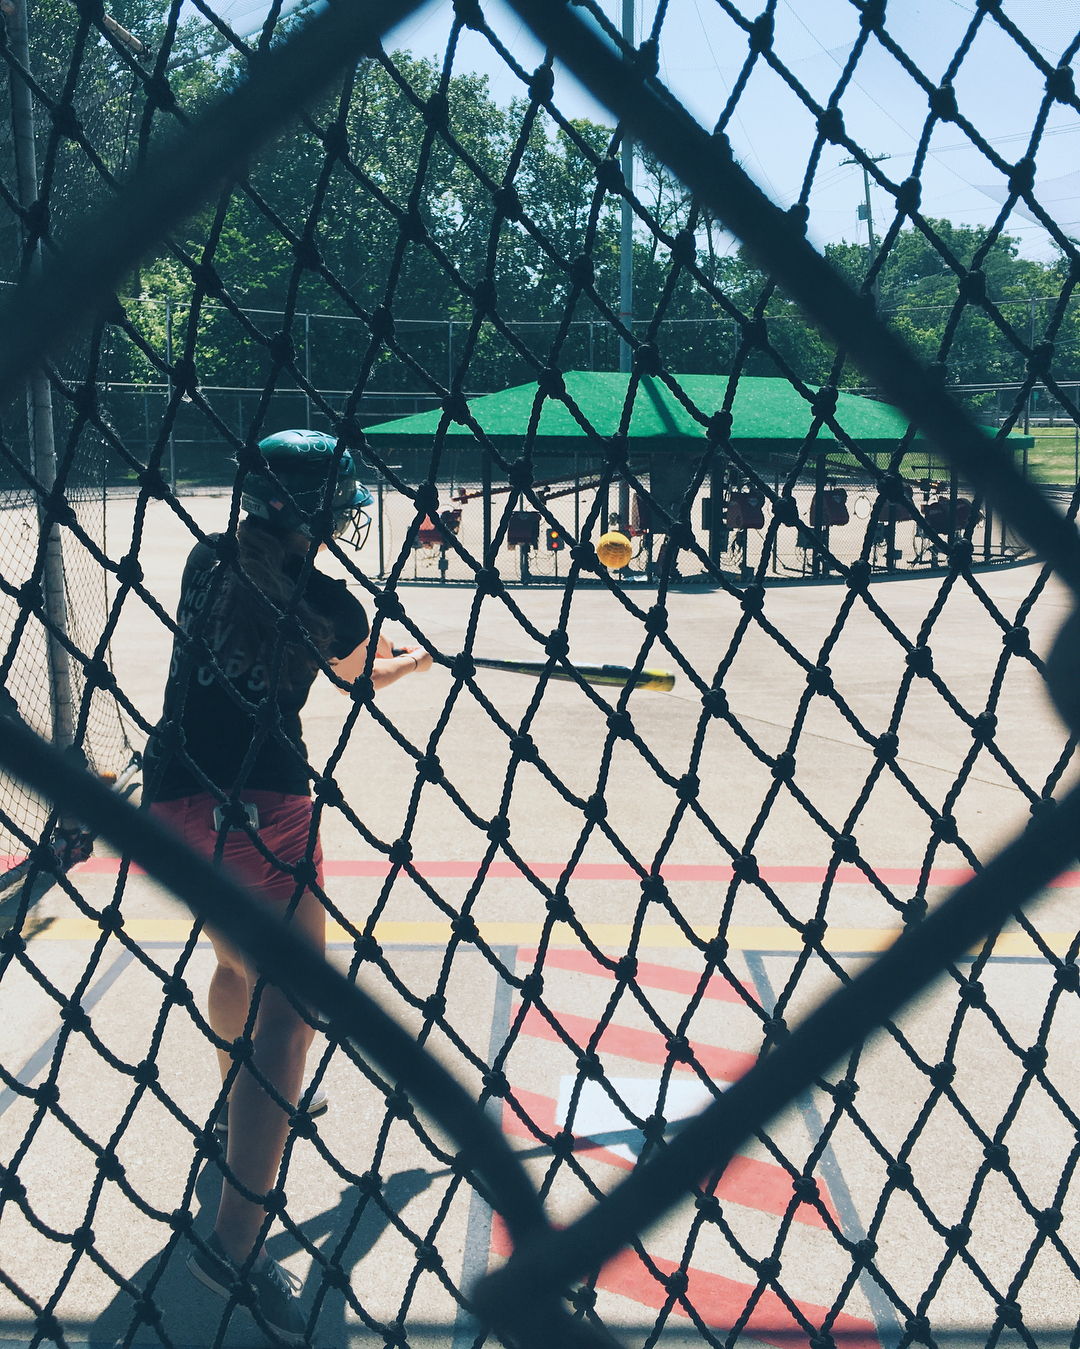 Boy hits ball in batting cage